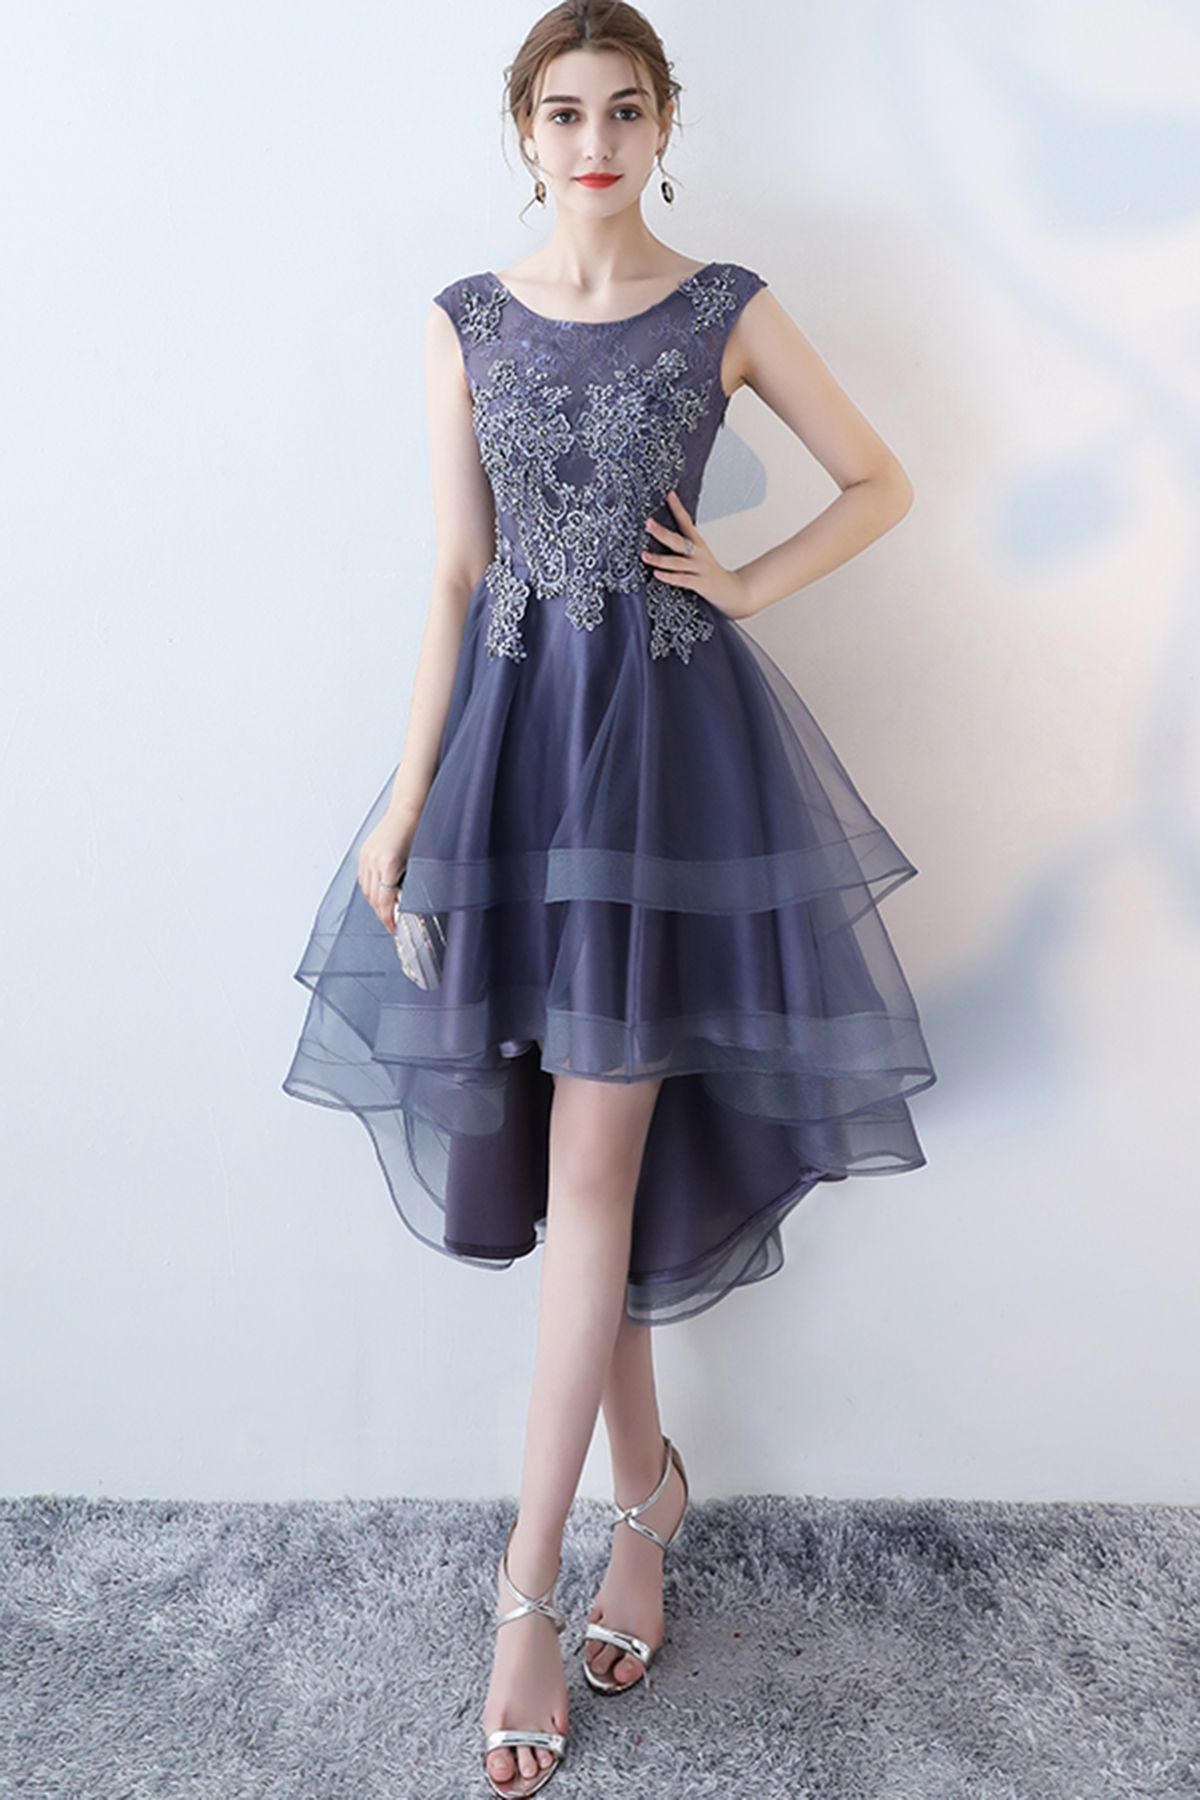 Stylish Navy Blue Tulle High Low Halter Sleeves Homecoming Dress Short Party Dress 054 In 2021 Homecoming Dresses Dresses Short Party Dress [ 1800 x 1200 Pixel ]